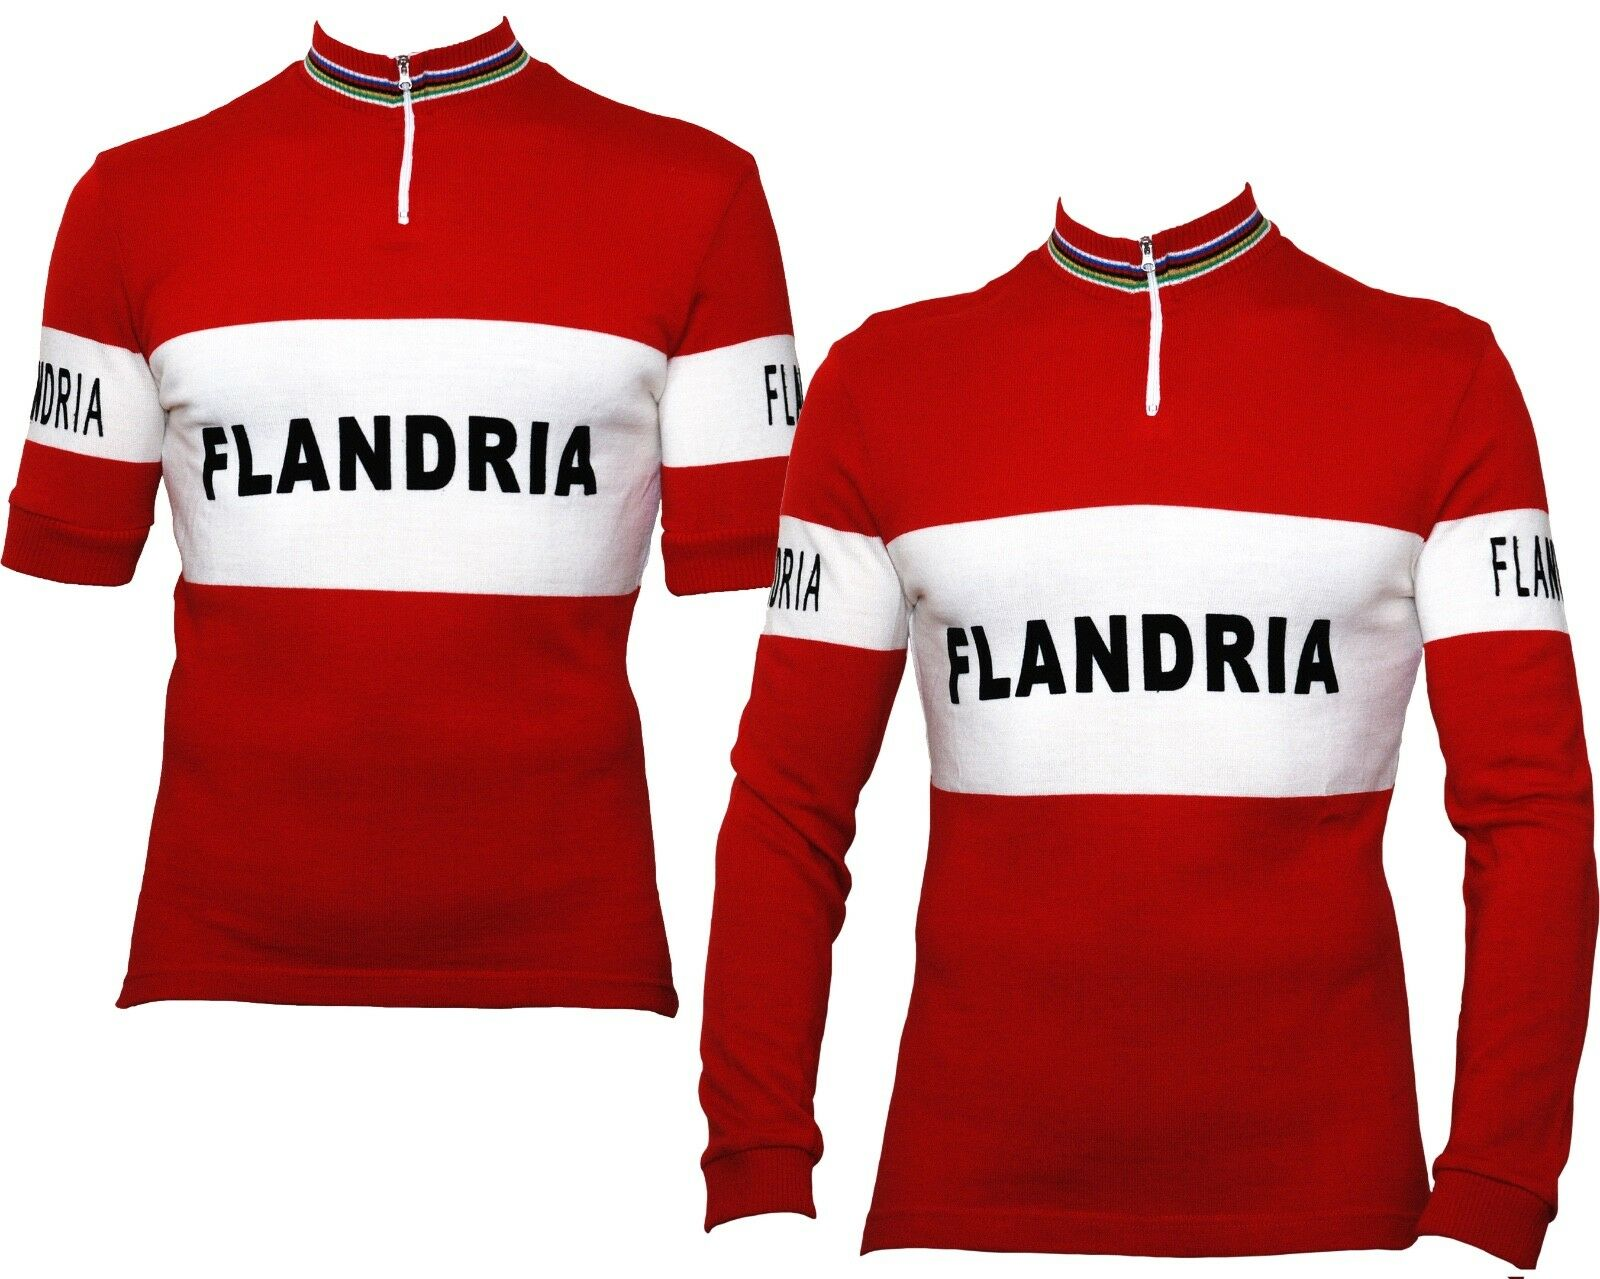 FLANDRIA Retro Wool Cycling Jersey Short Long Sleeve - Genuine Flandria Product